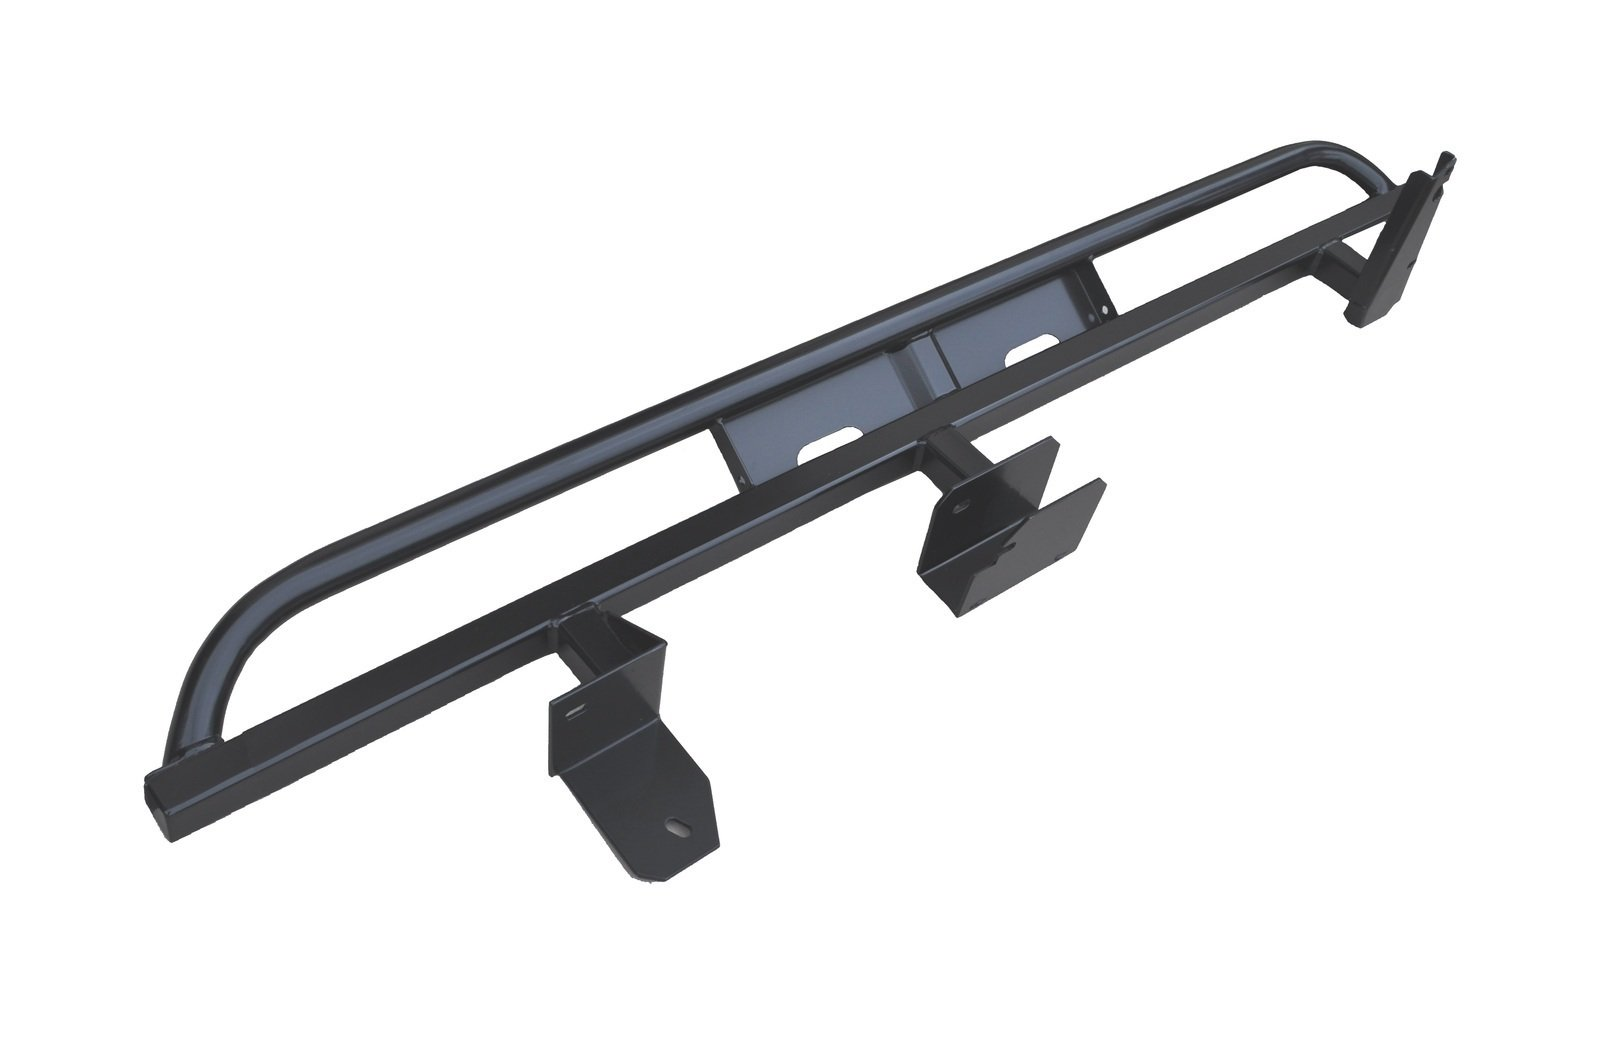 VMN also offers various sliders with standard height either for body or non-body lift